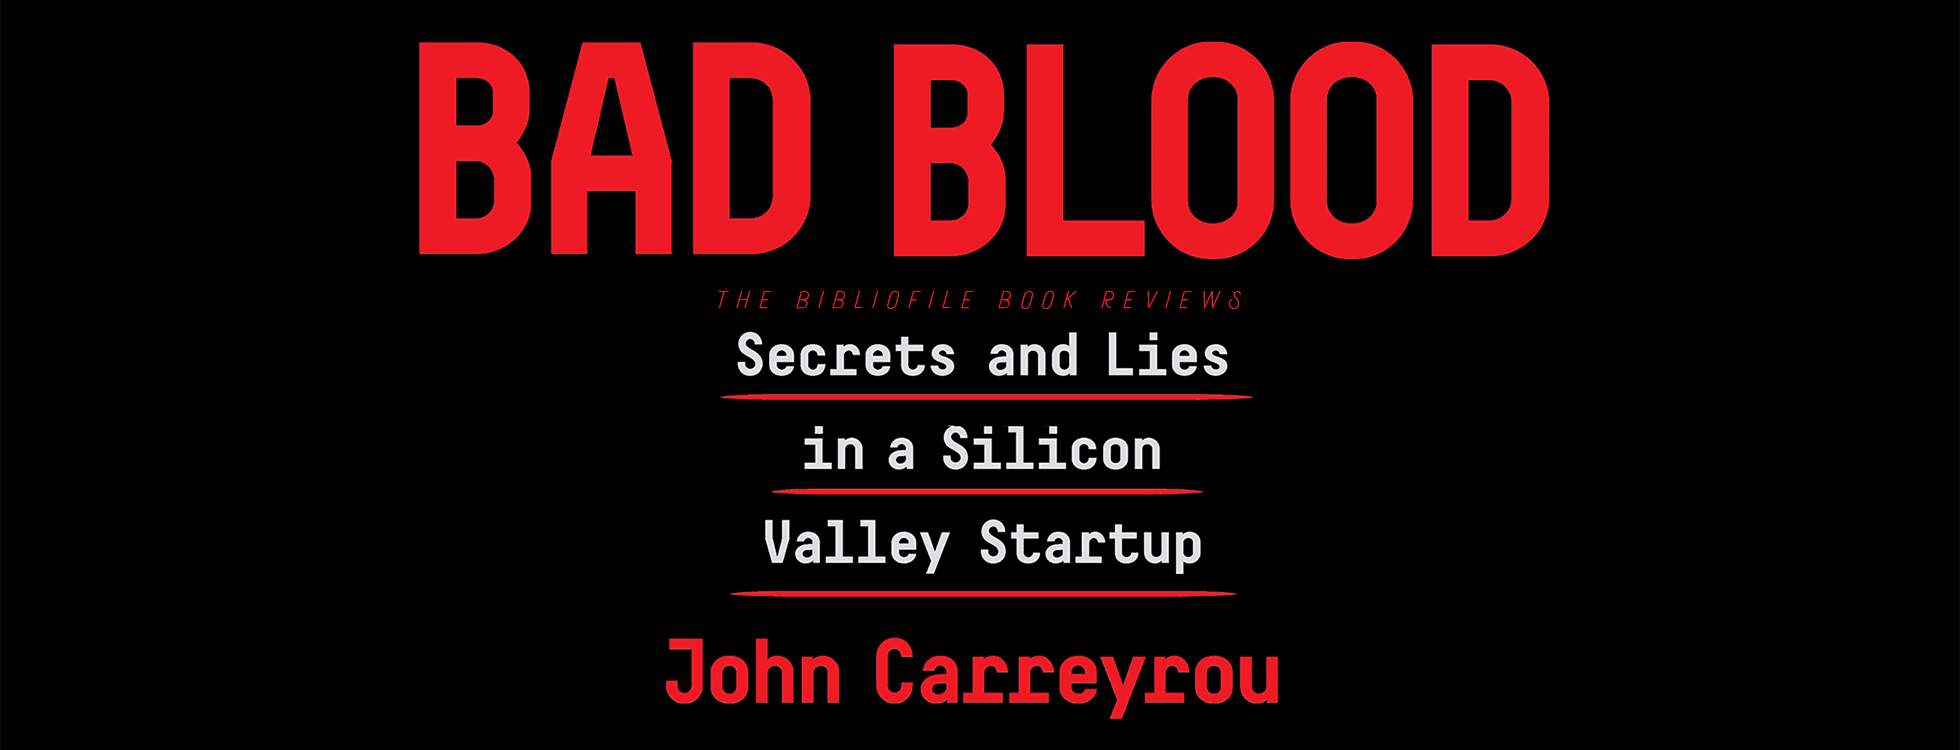 bad blood by john carreyrou book review summary key ideas key insights